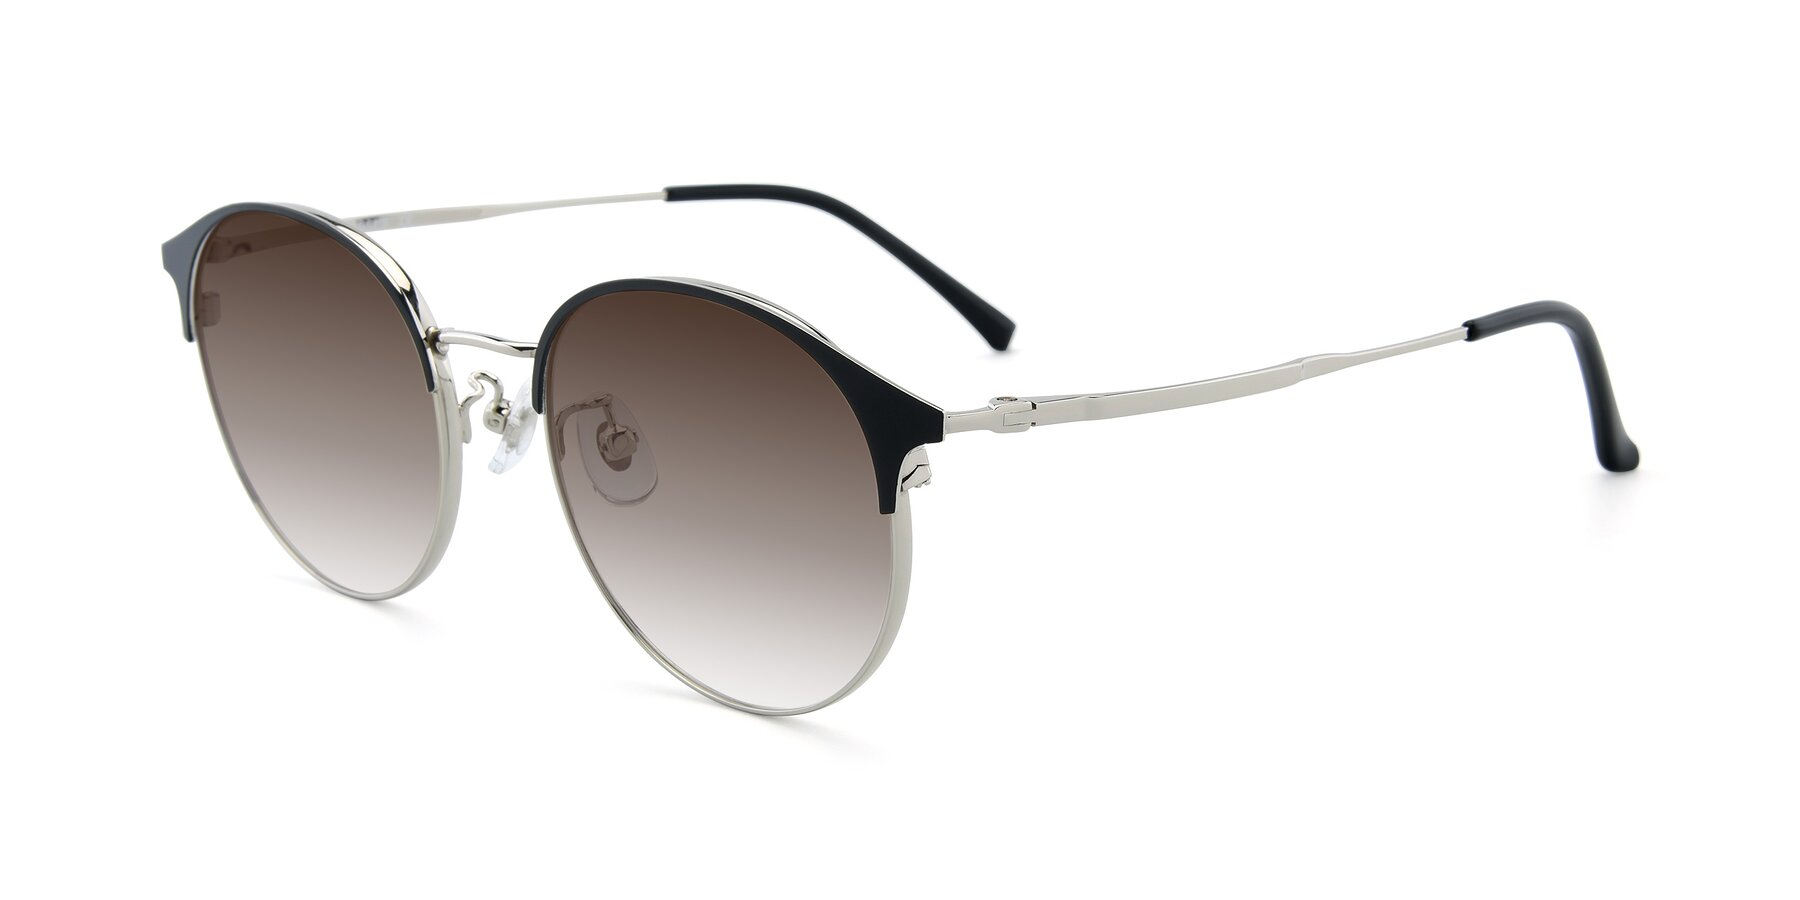 Angle of XC-8031 in Black-Silver with Brown Gradient Lenses